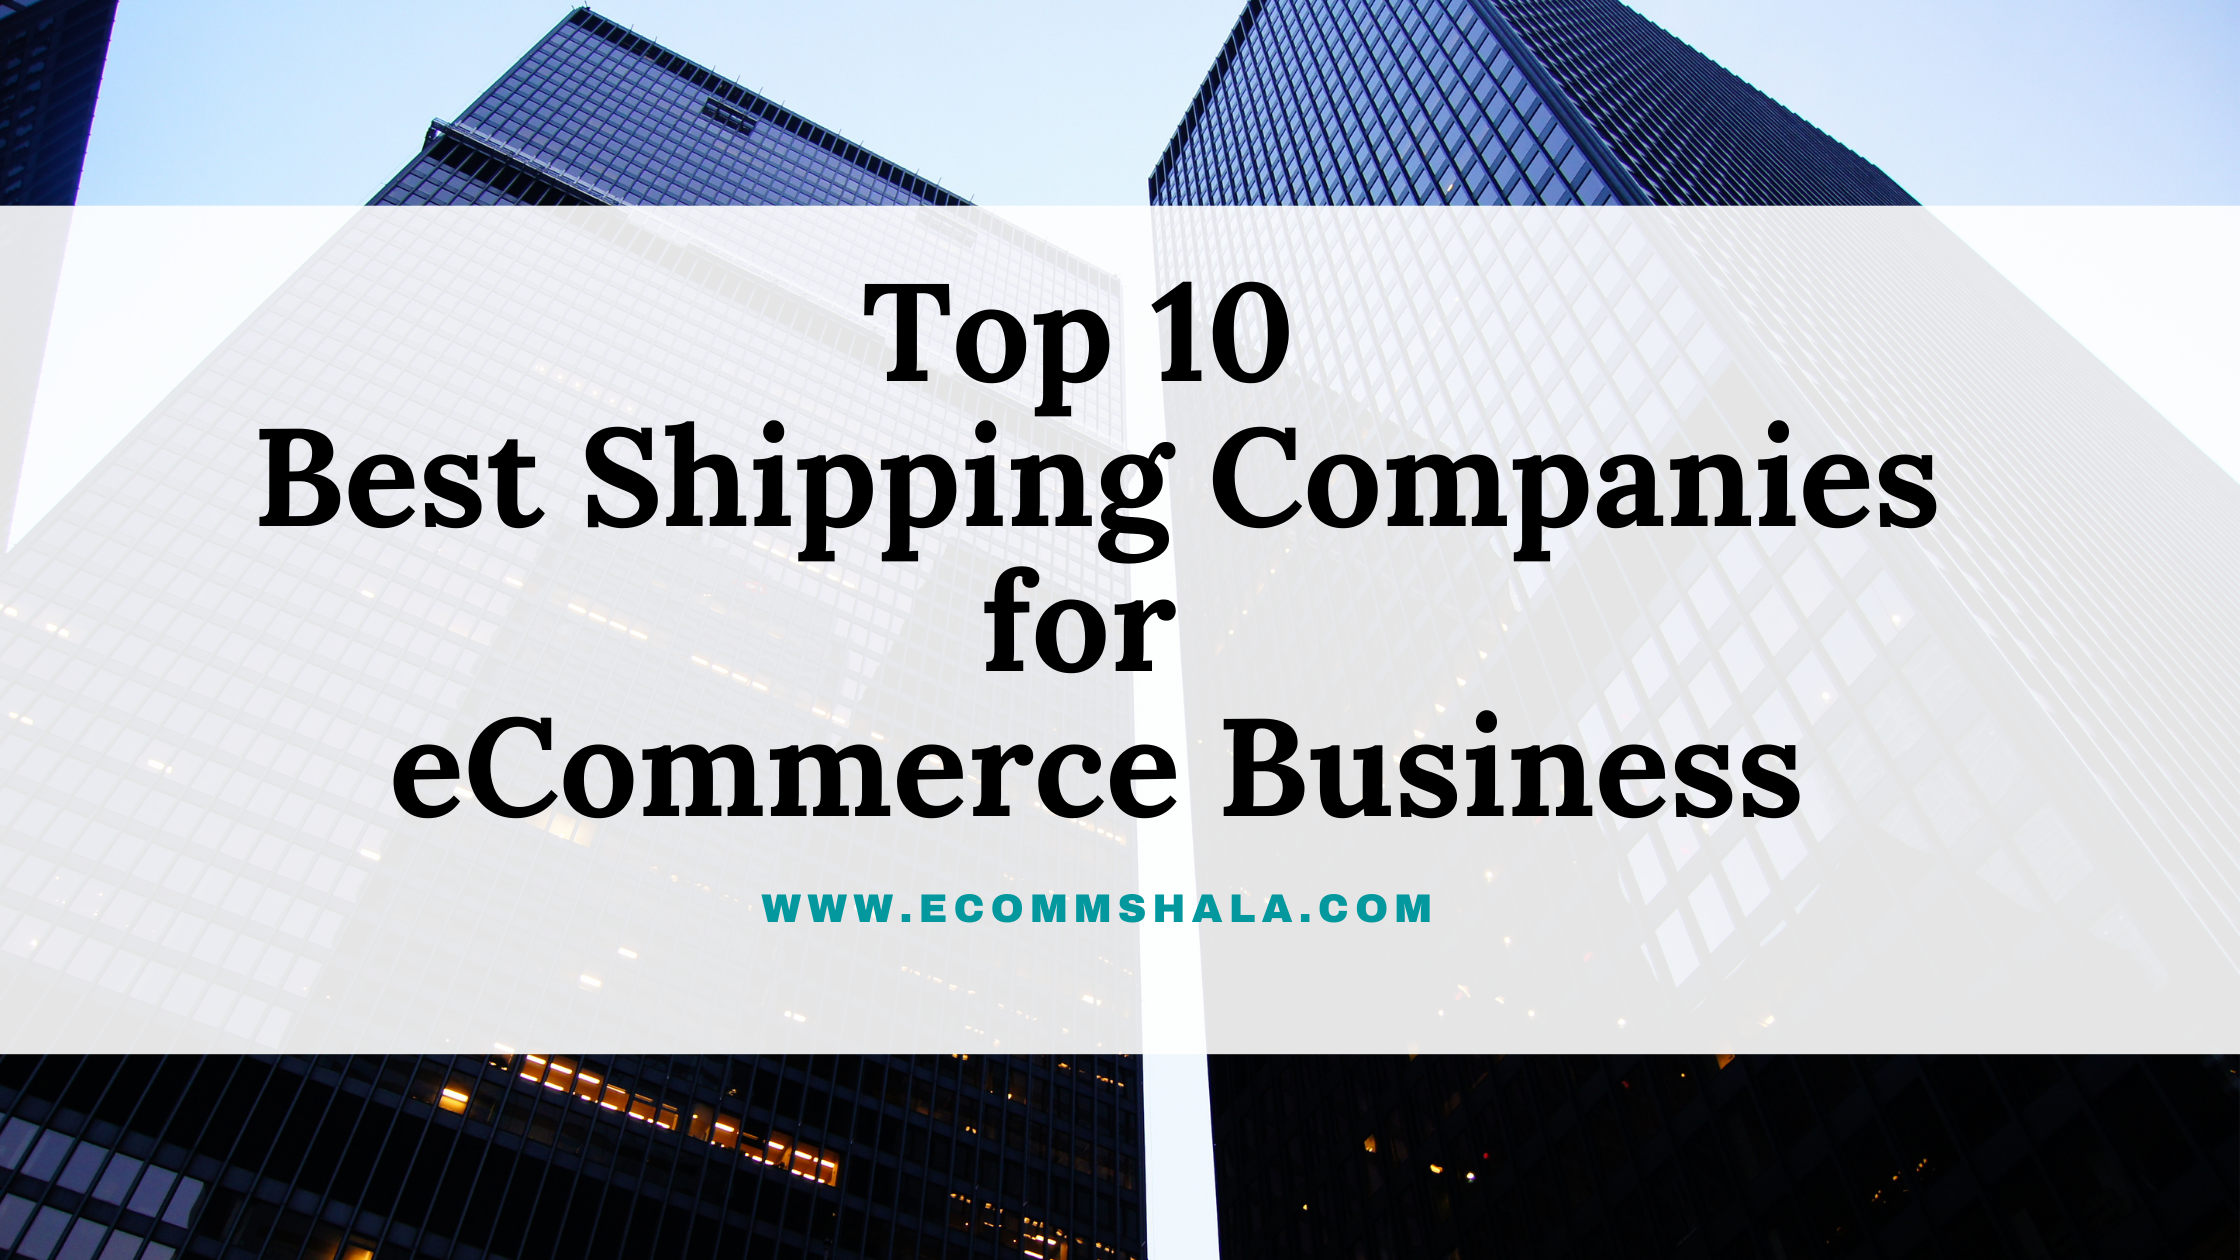 Best Shipping Companies for eCommerce Business